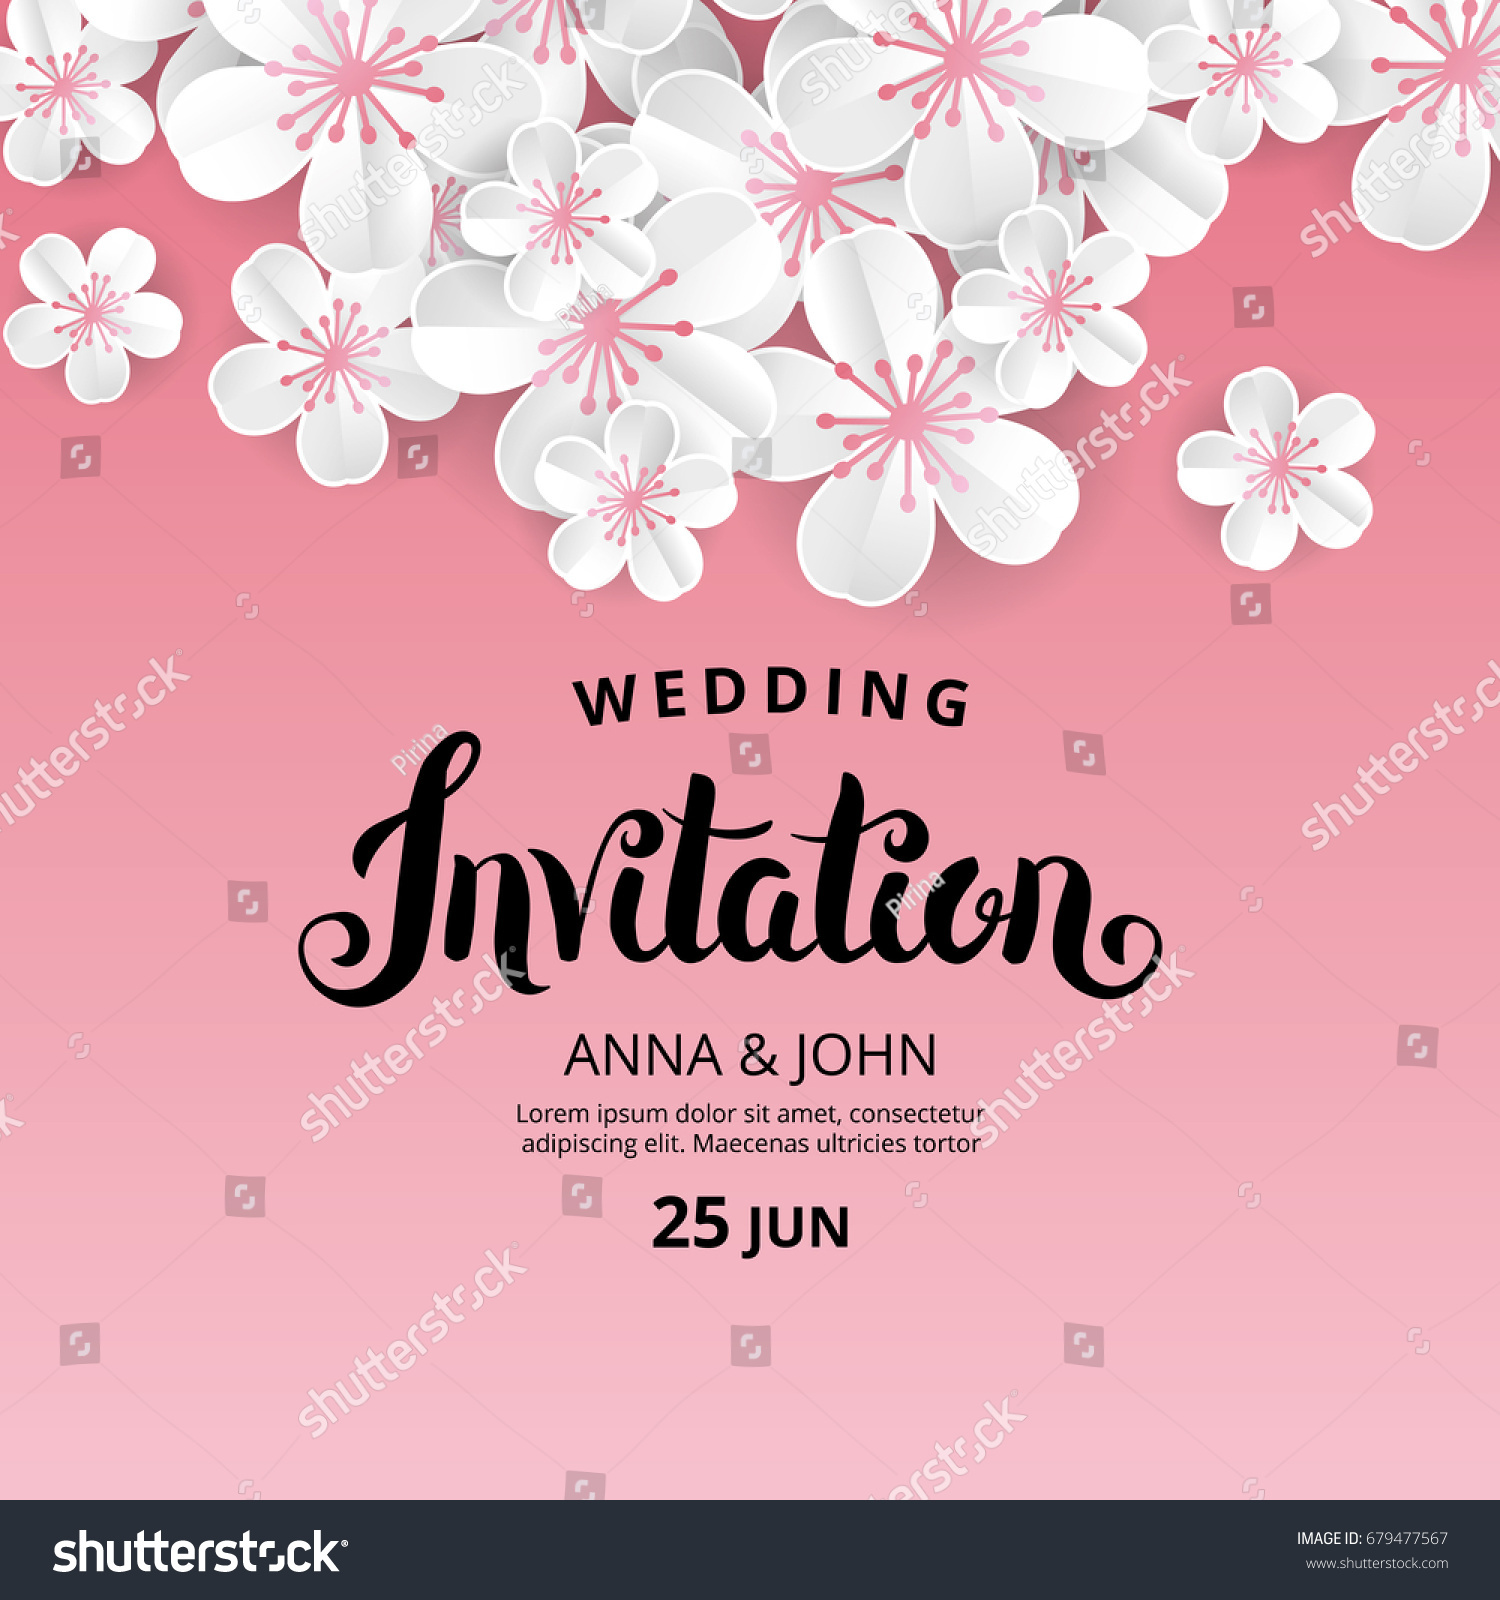 White Flowers Invitation Wedding Banner Paper Stock Vector Royalty Free 679477567